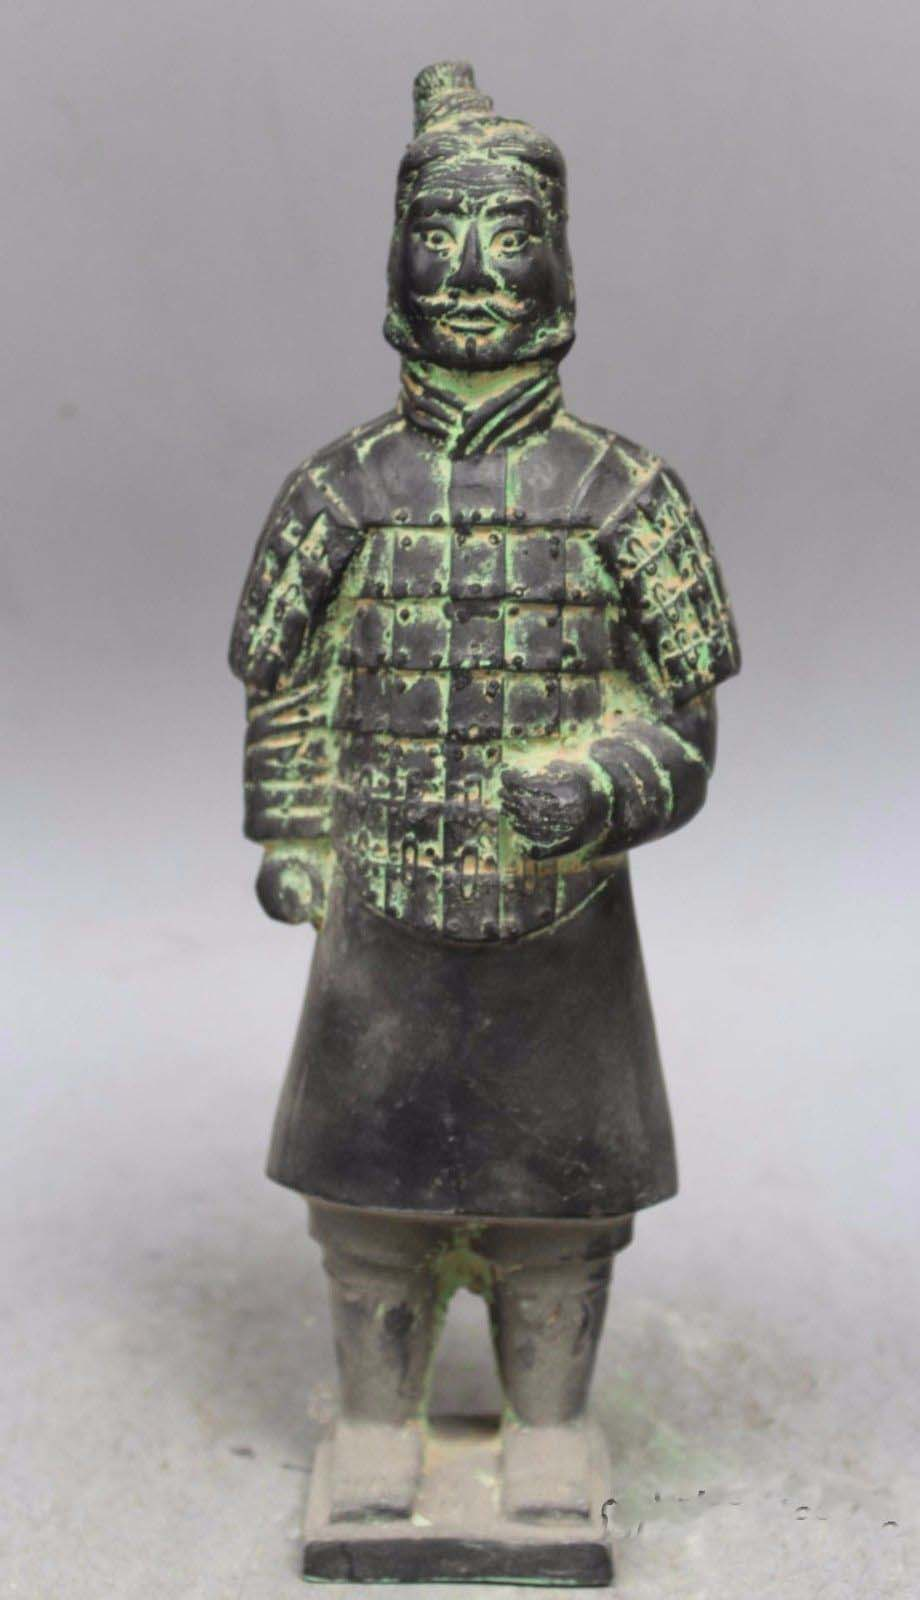 China bronze carved finely three terracotta warrior Sculpture statuesChina bronze carved finely three terracotta warrior Sculpture statues